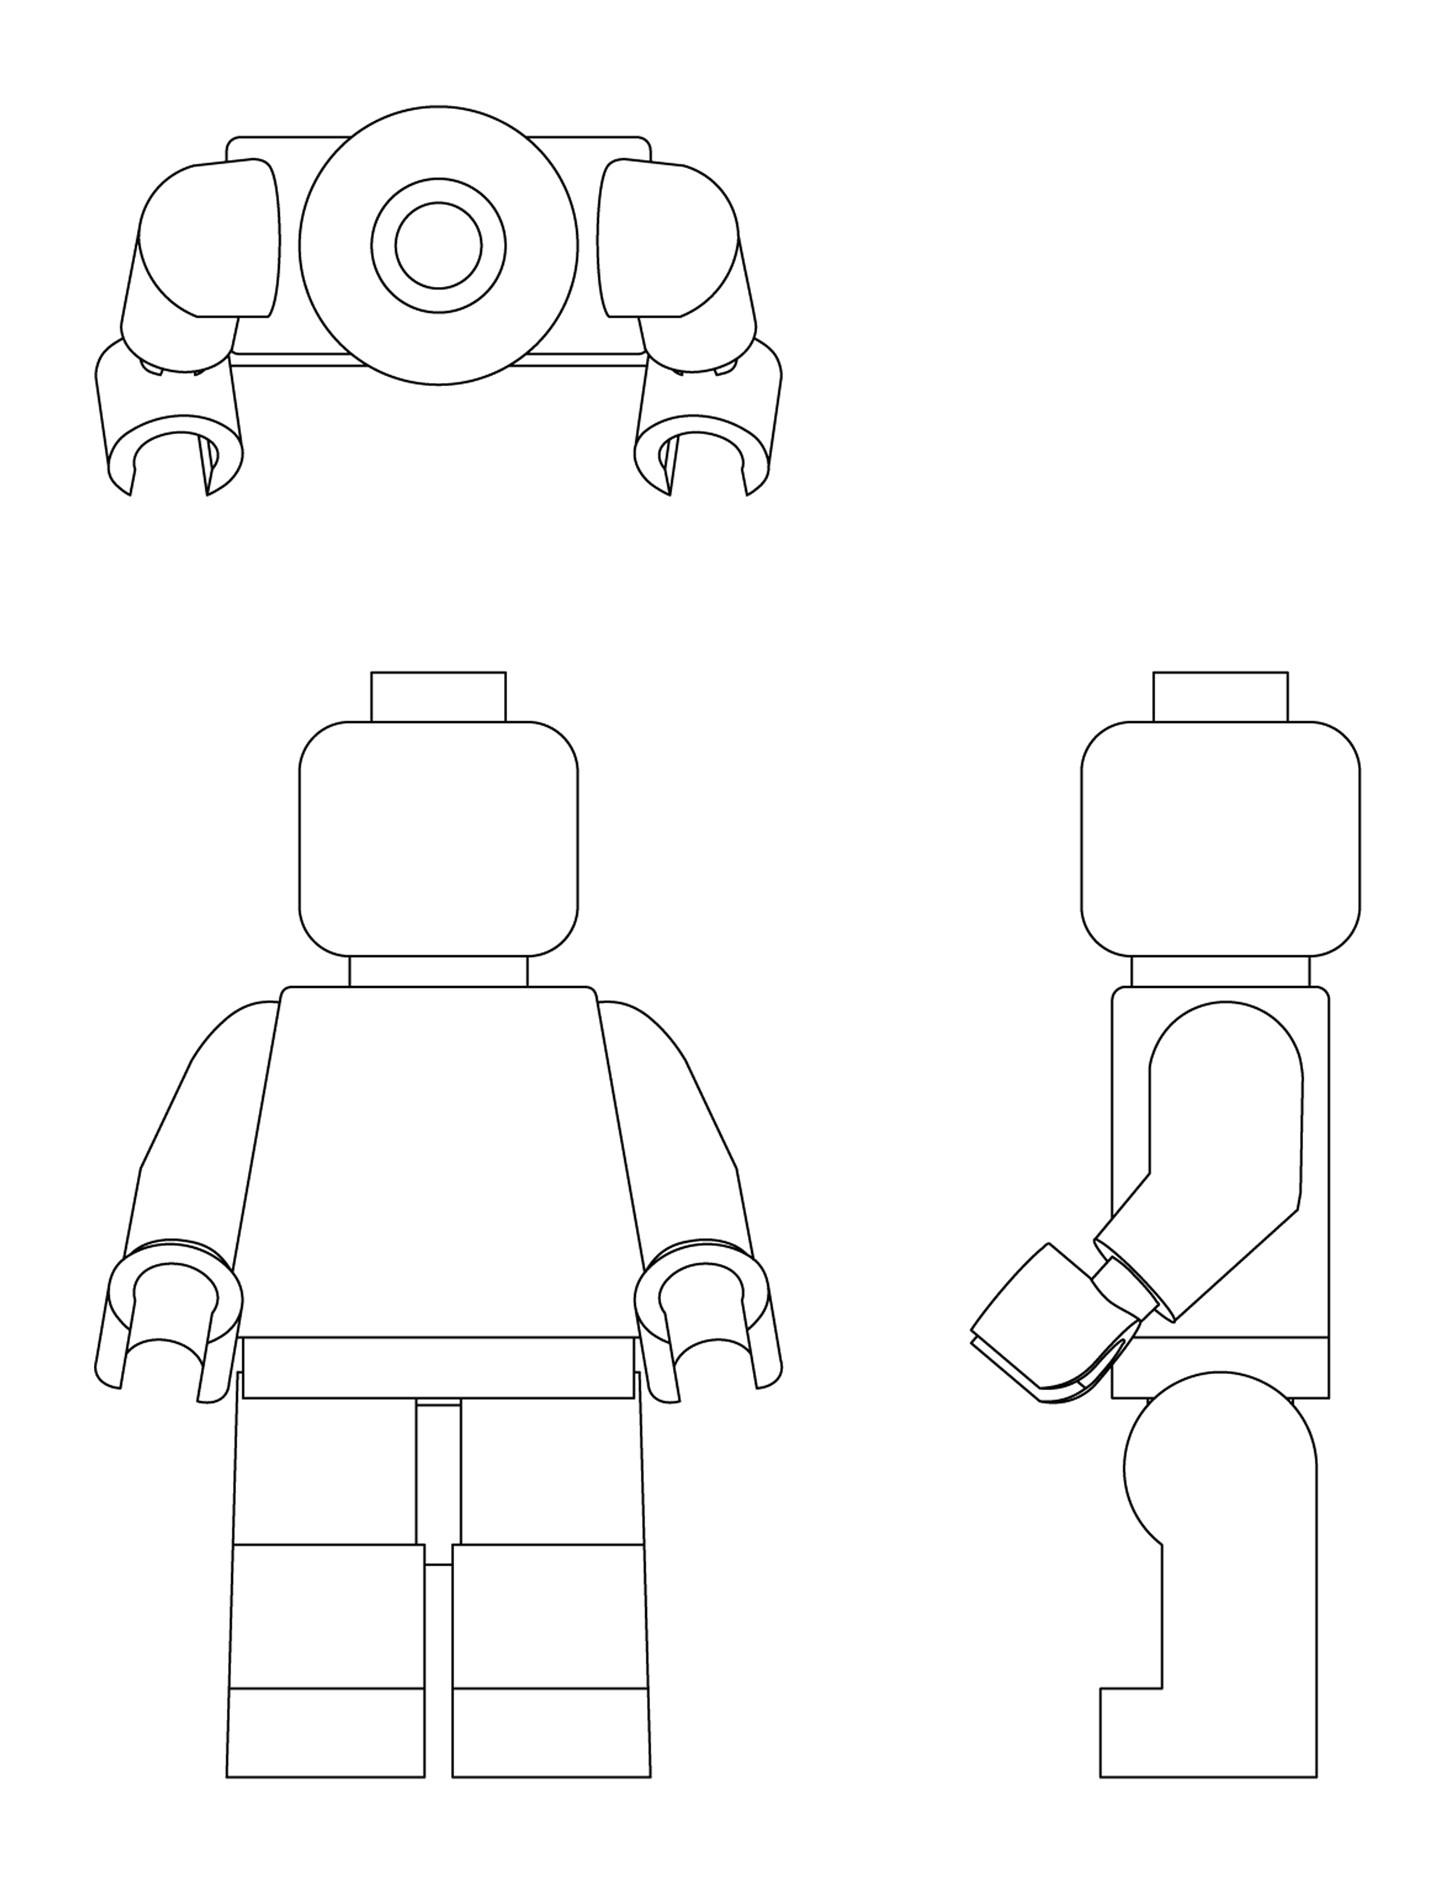 Lego Figure Template Excellent Warhammer 40k Templates Pictures Inspiration